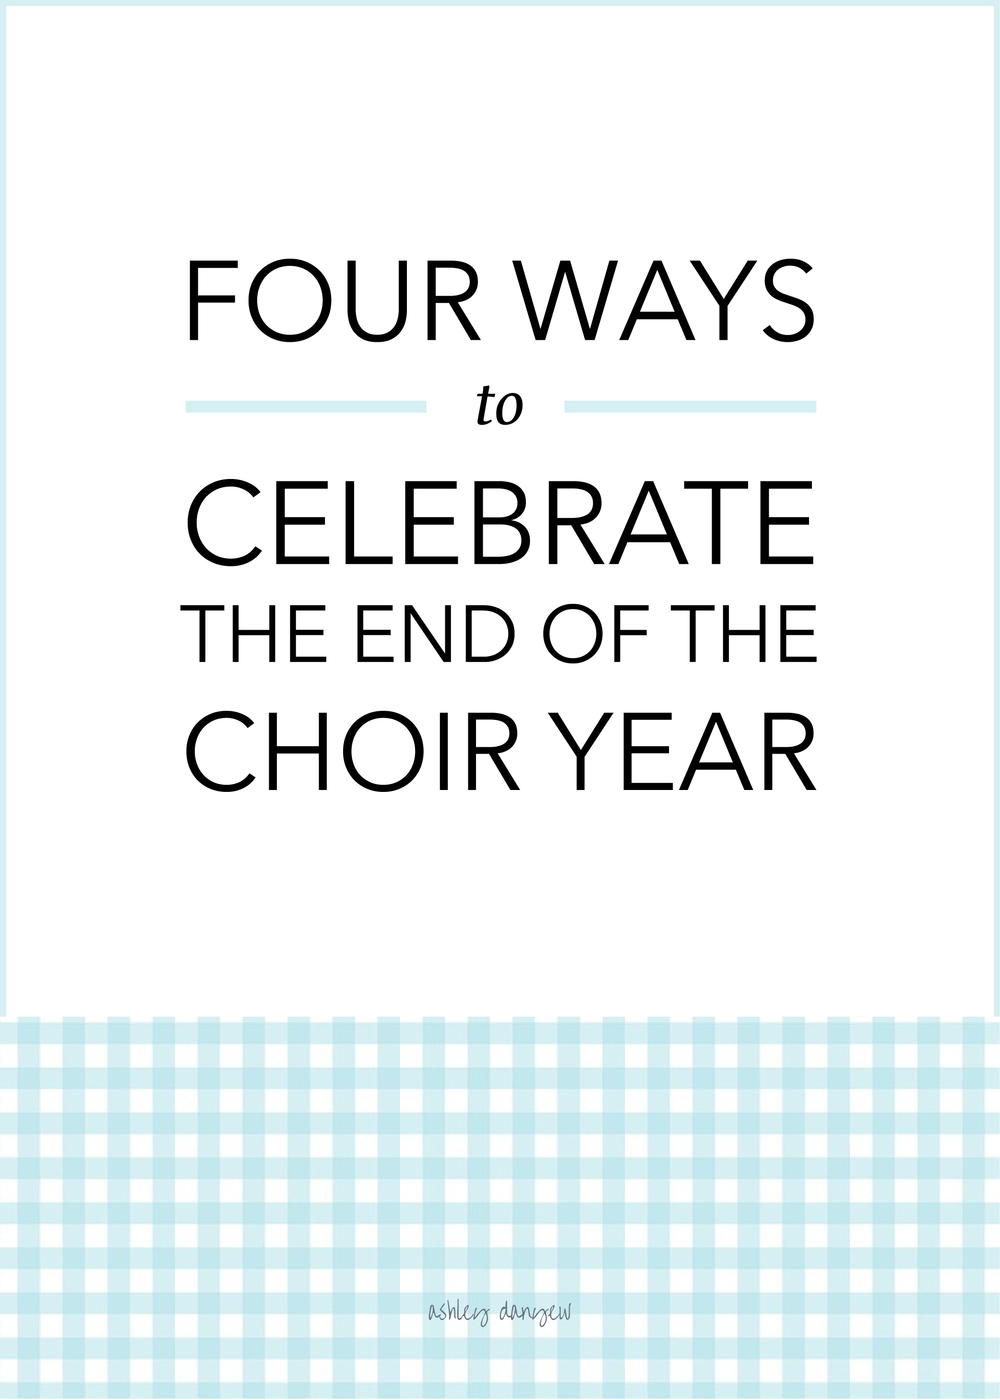 Copy of Four Ways to Celebrate the End of the Choir Year